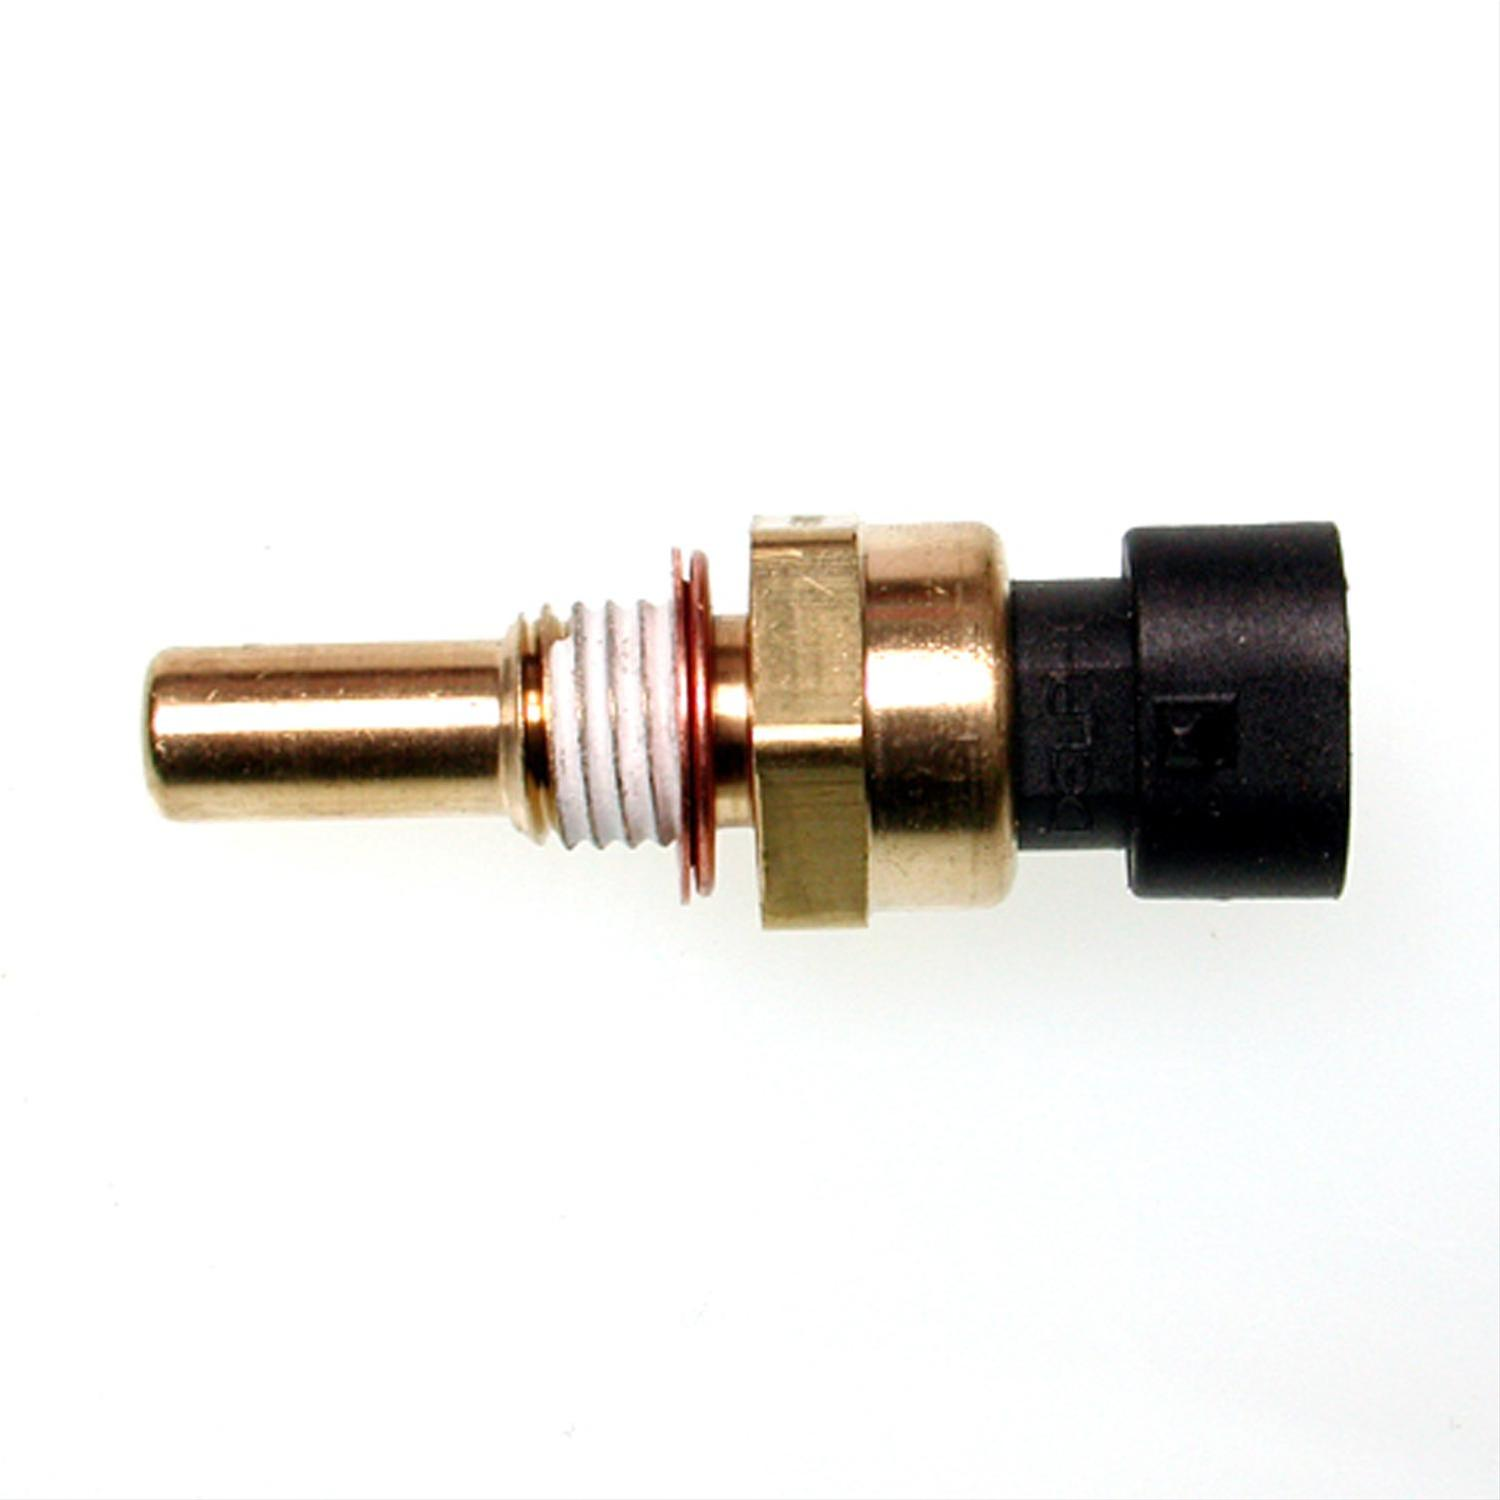 hight resolution of delphi engine coolant temperature sensors ts10076 free shipping on orders over 99 at summit racing